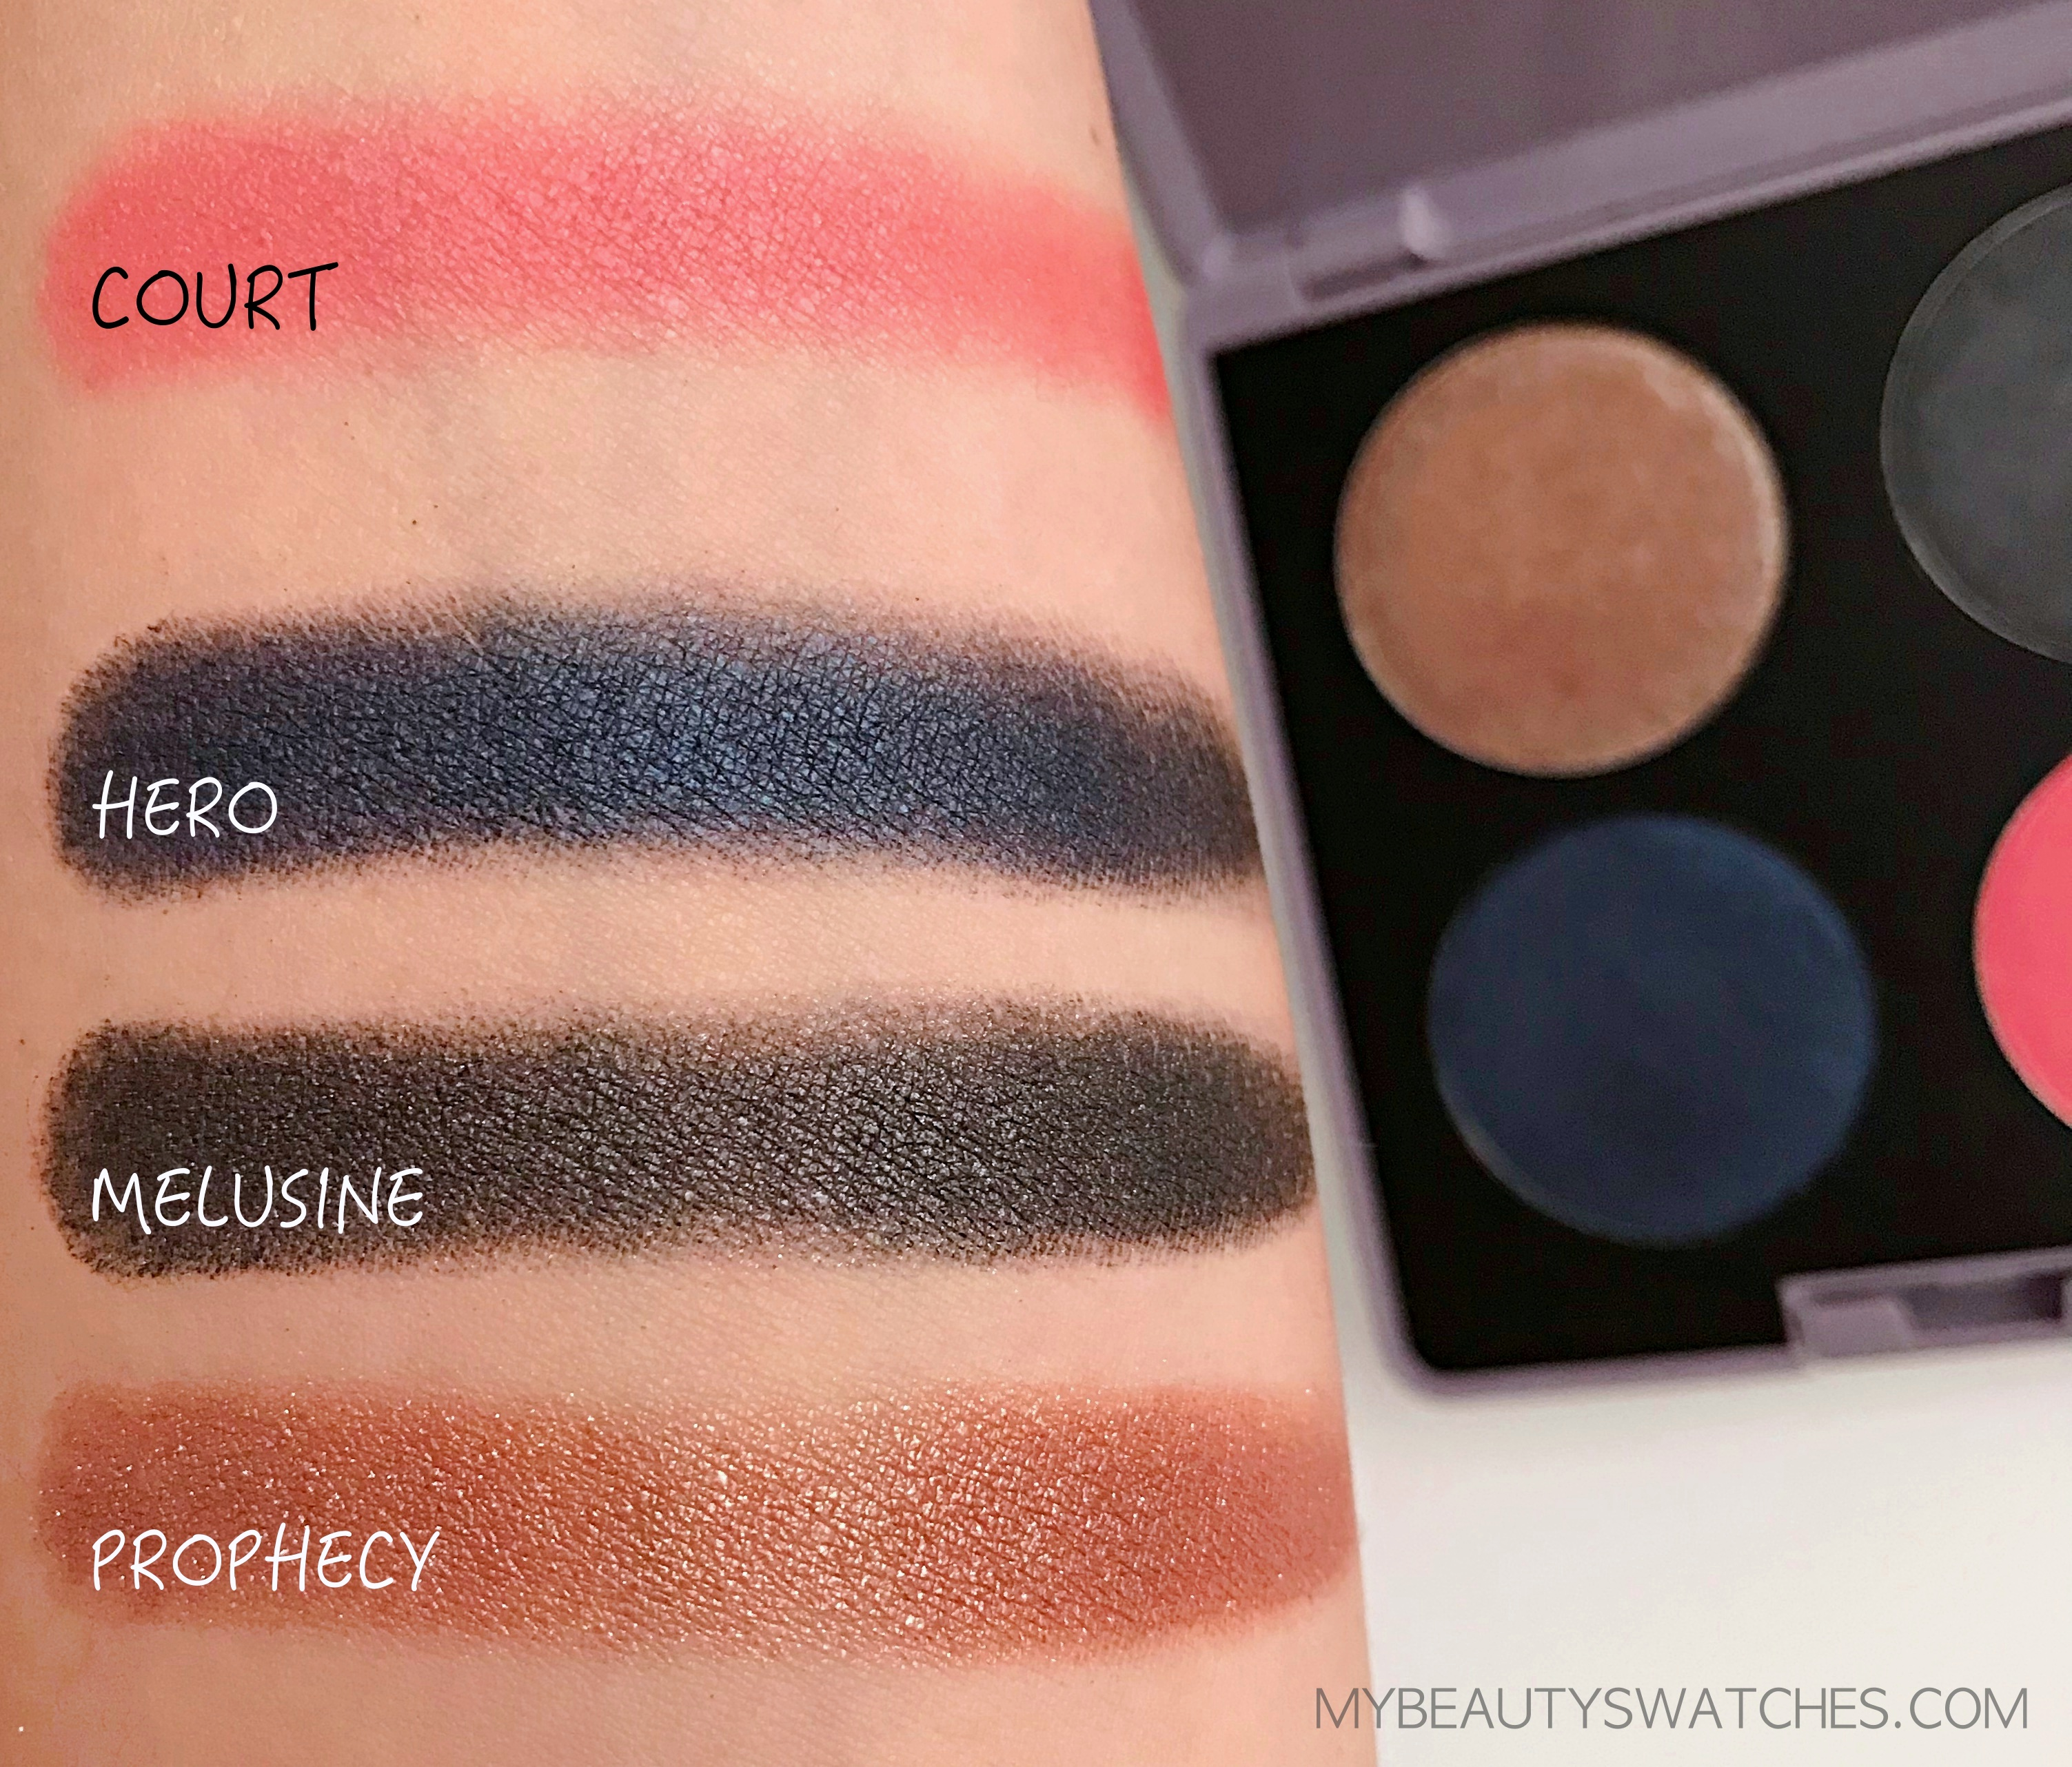 Neve Neogothic_cialde swatches.jpg